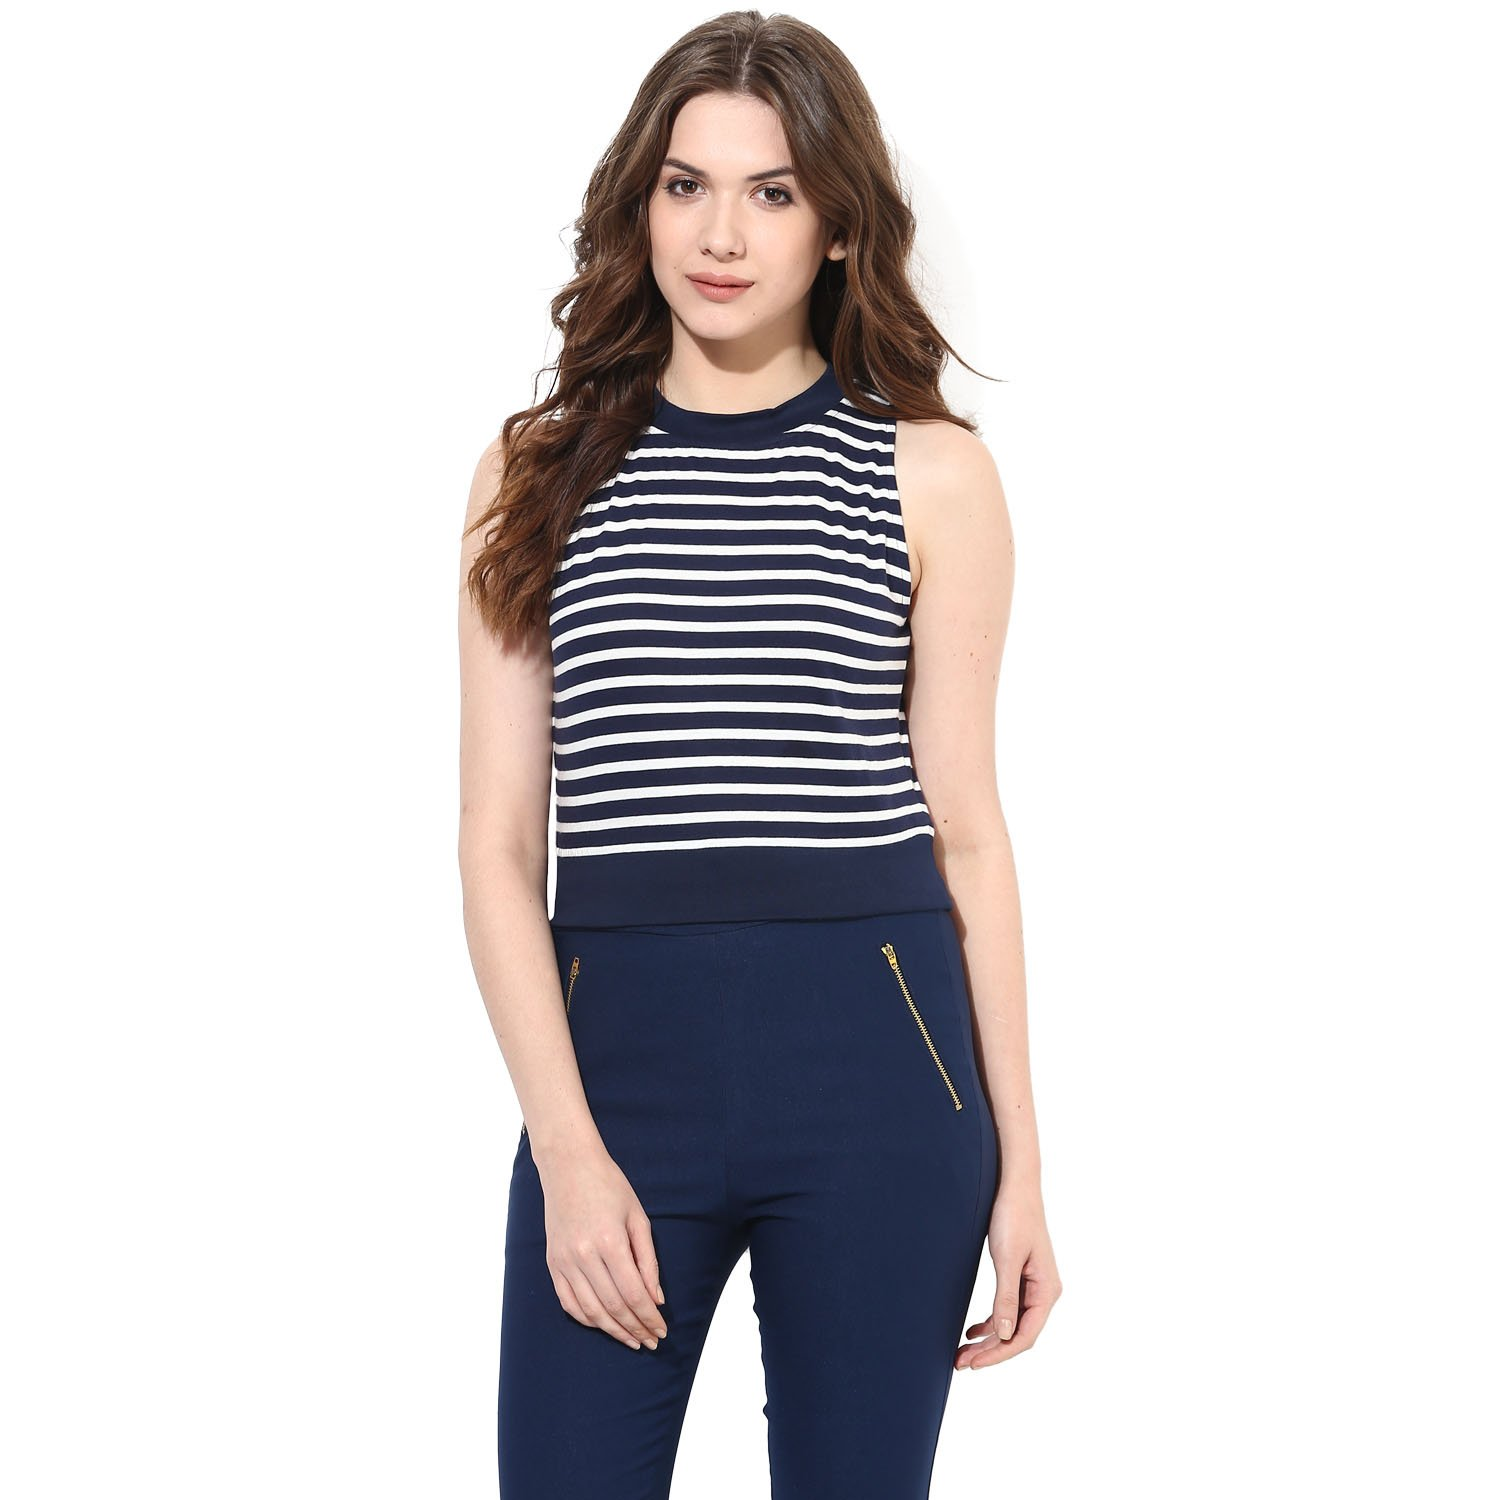 d1e547e97 Miss Chase Women's Navy Blue Striped Cotton Round Neck Sleeveless Crop Top  at Amazon Women's Clothing store: